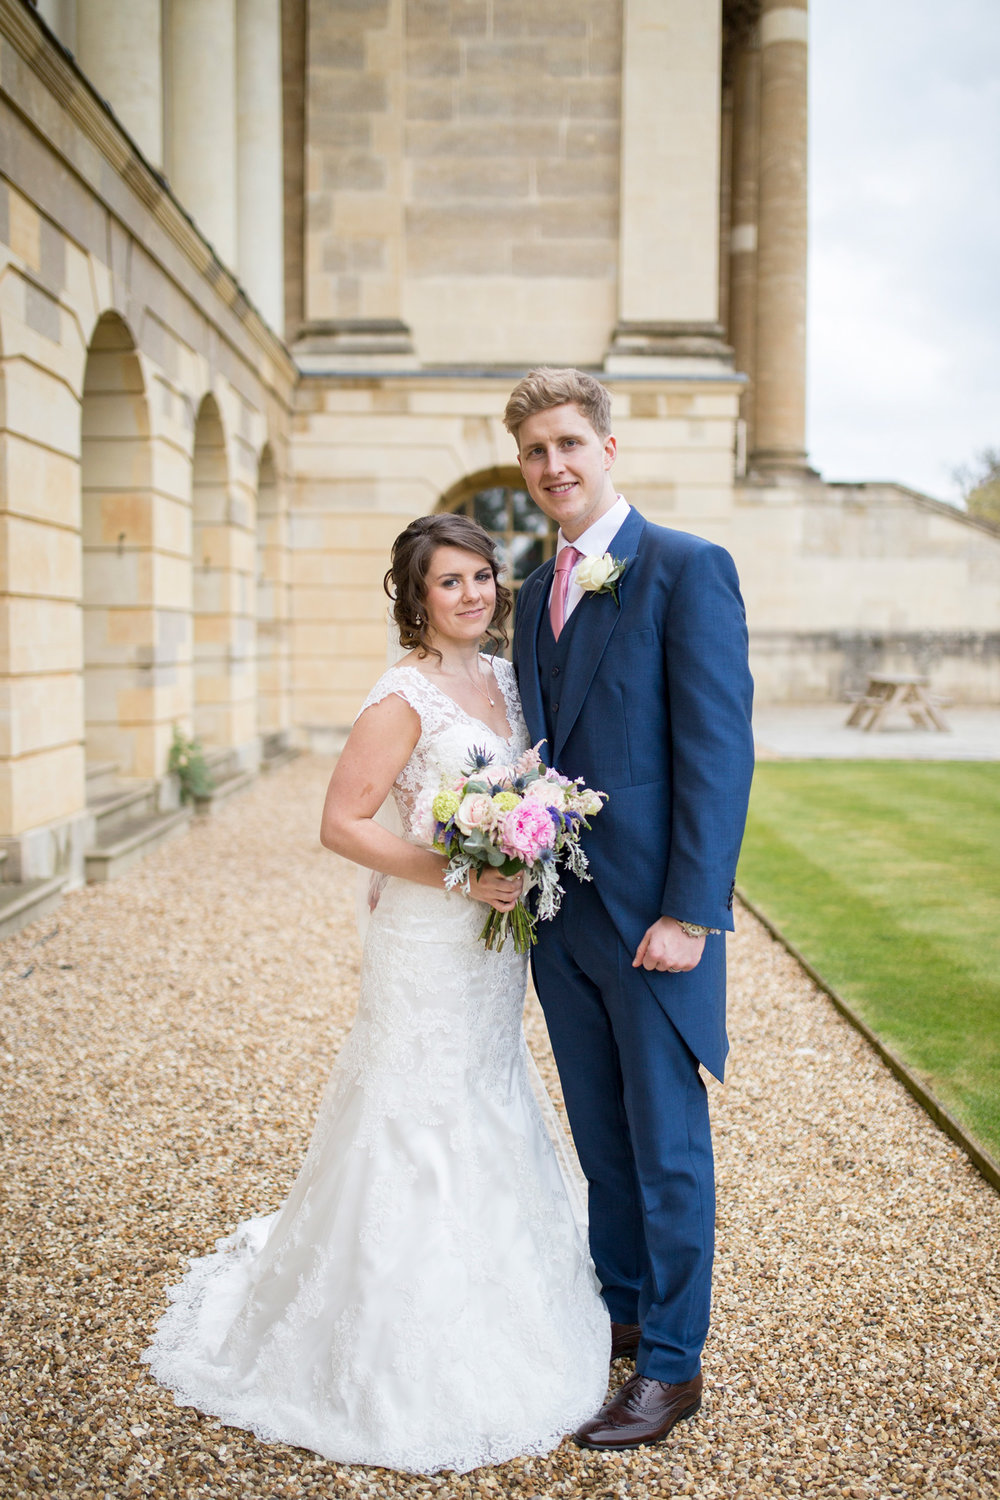 Stowe School, Luxe Wedding, Home Counties Wedding,